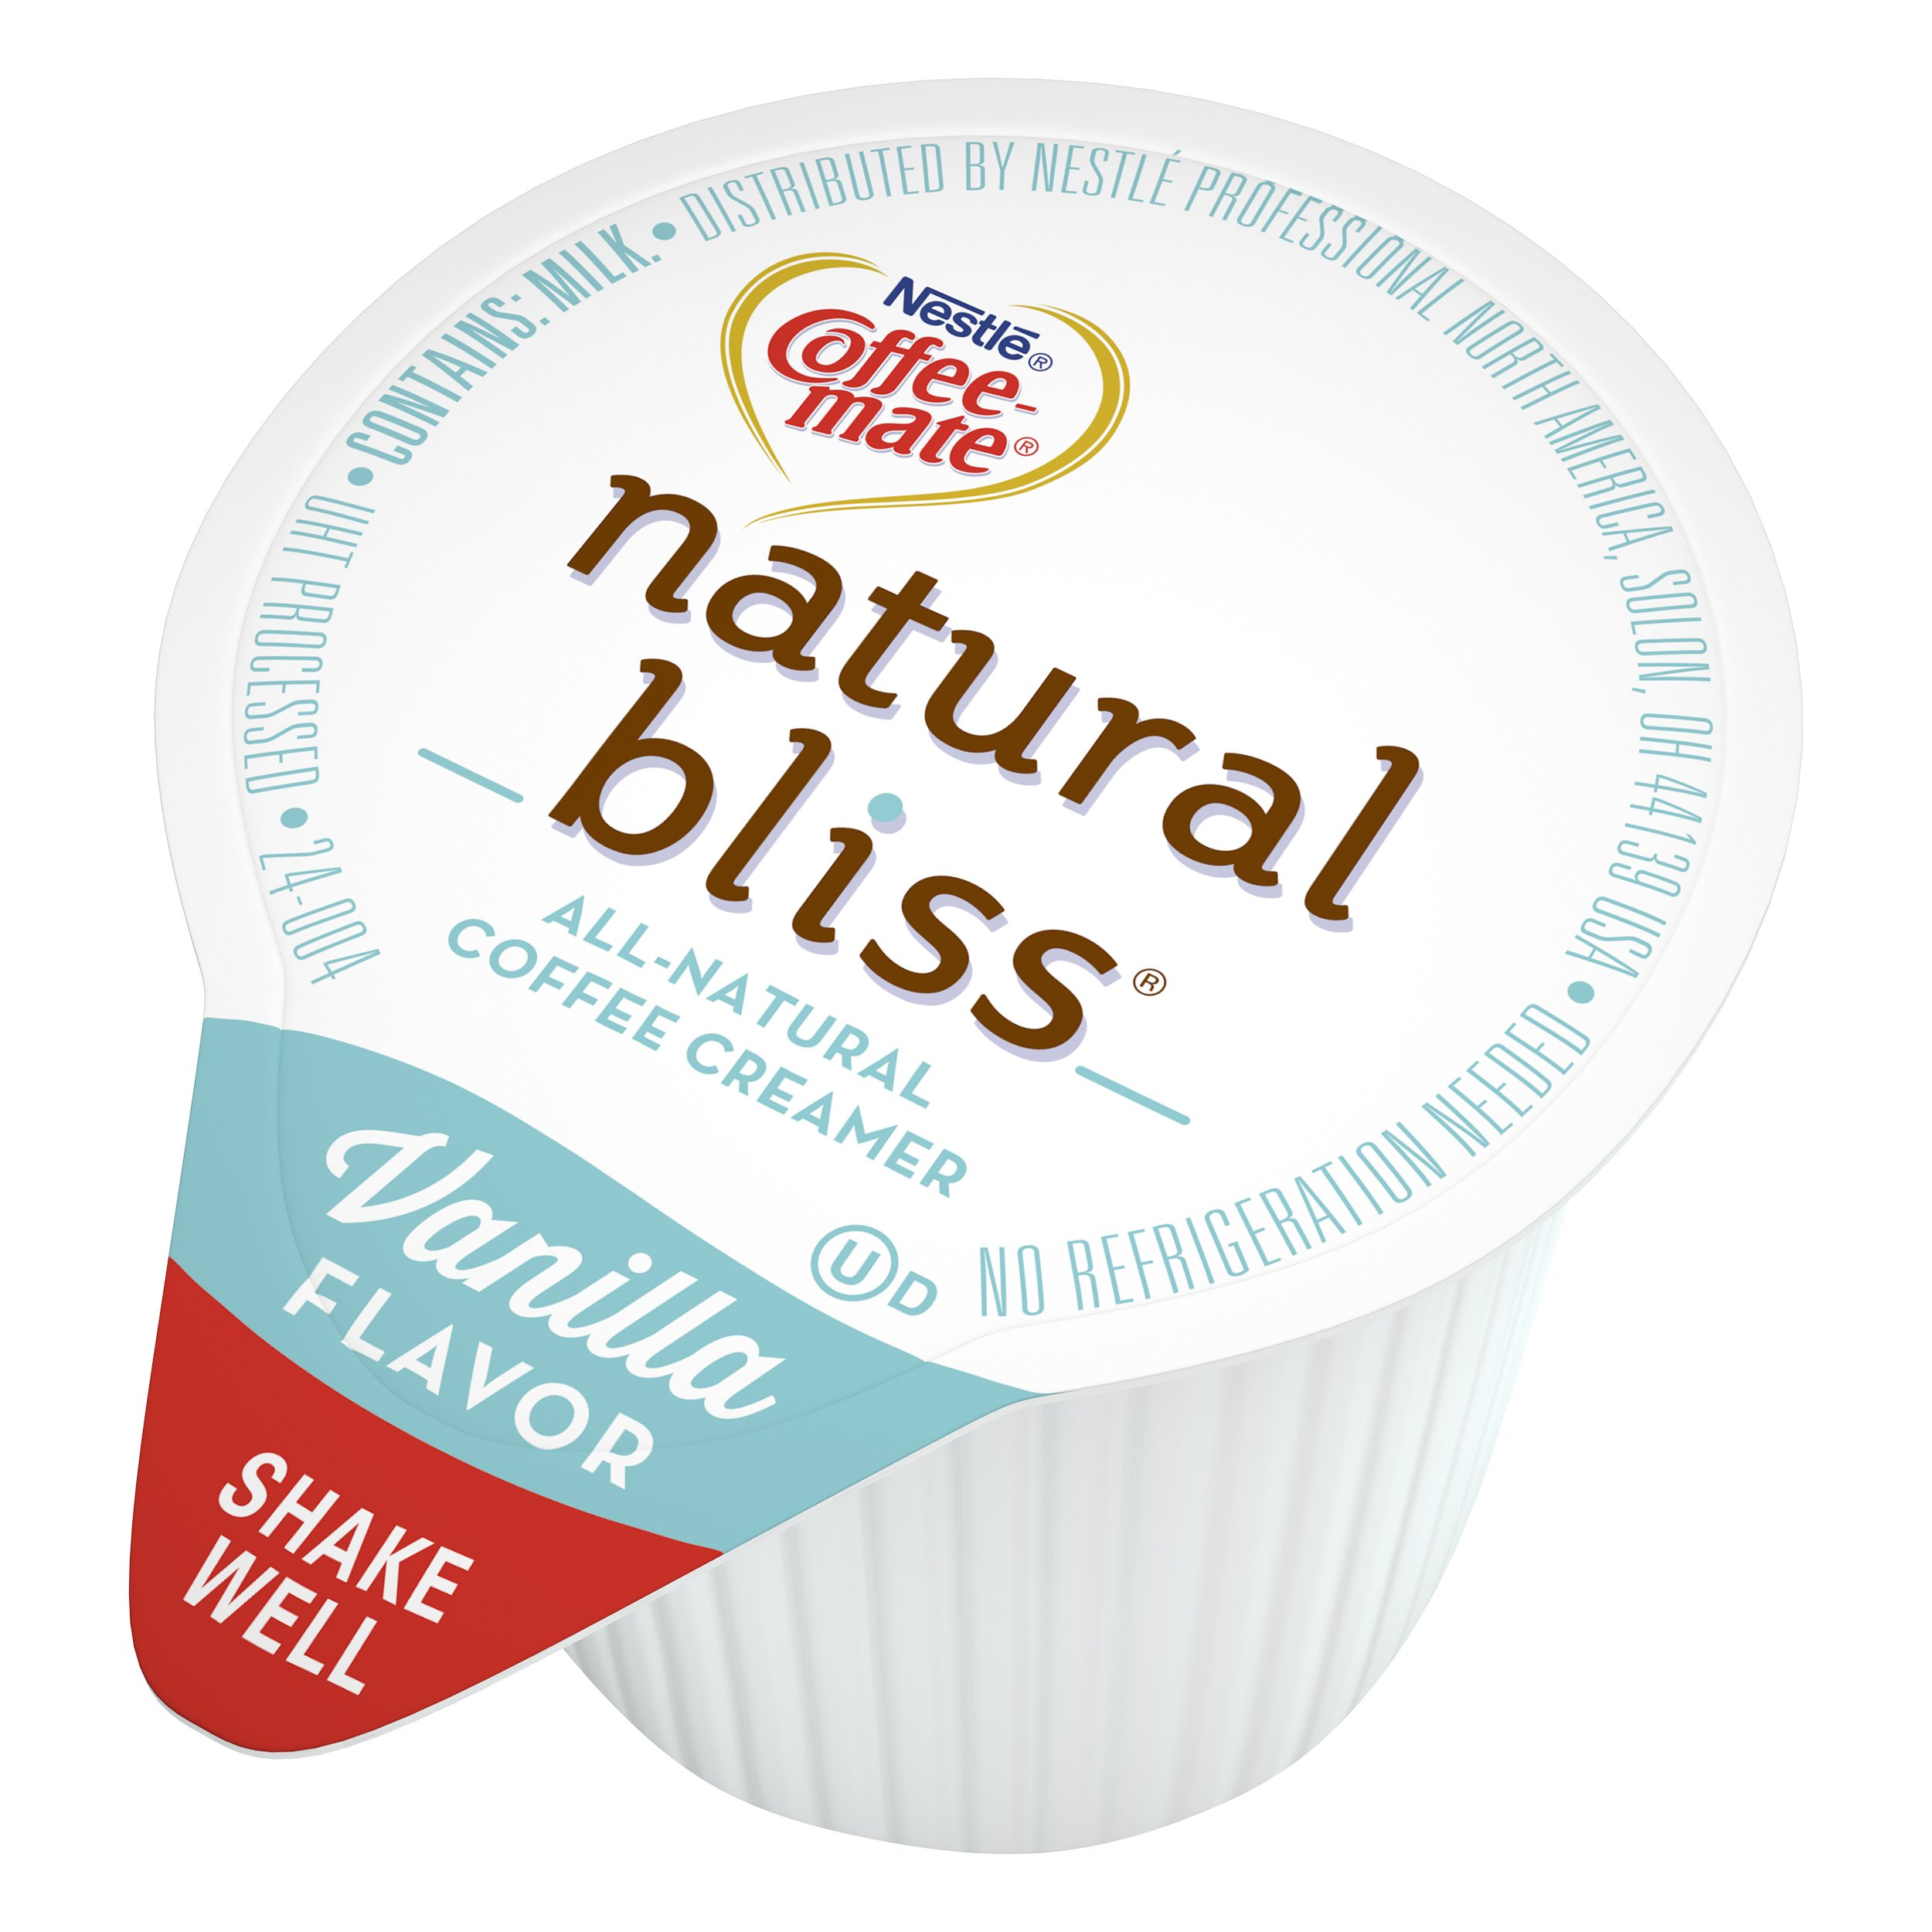 Nestle Coffee-mate Coffee Creamer, Natural Bliss, liquid creamer singles,180 Count (Pack of 1) by Nestle Coffee Mate (Image #2)